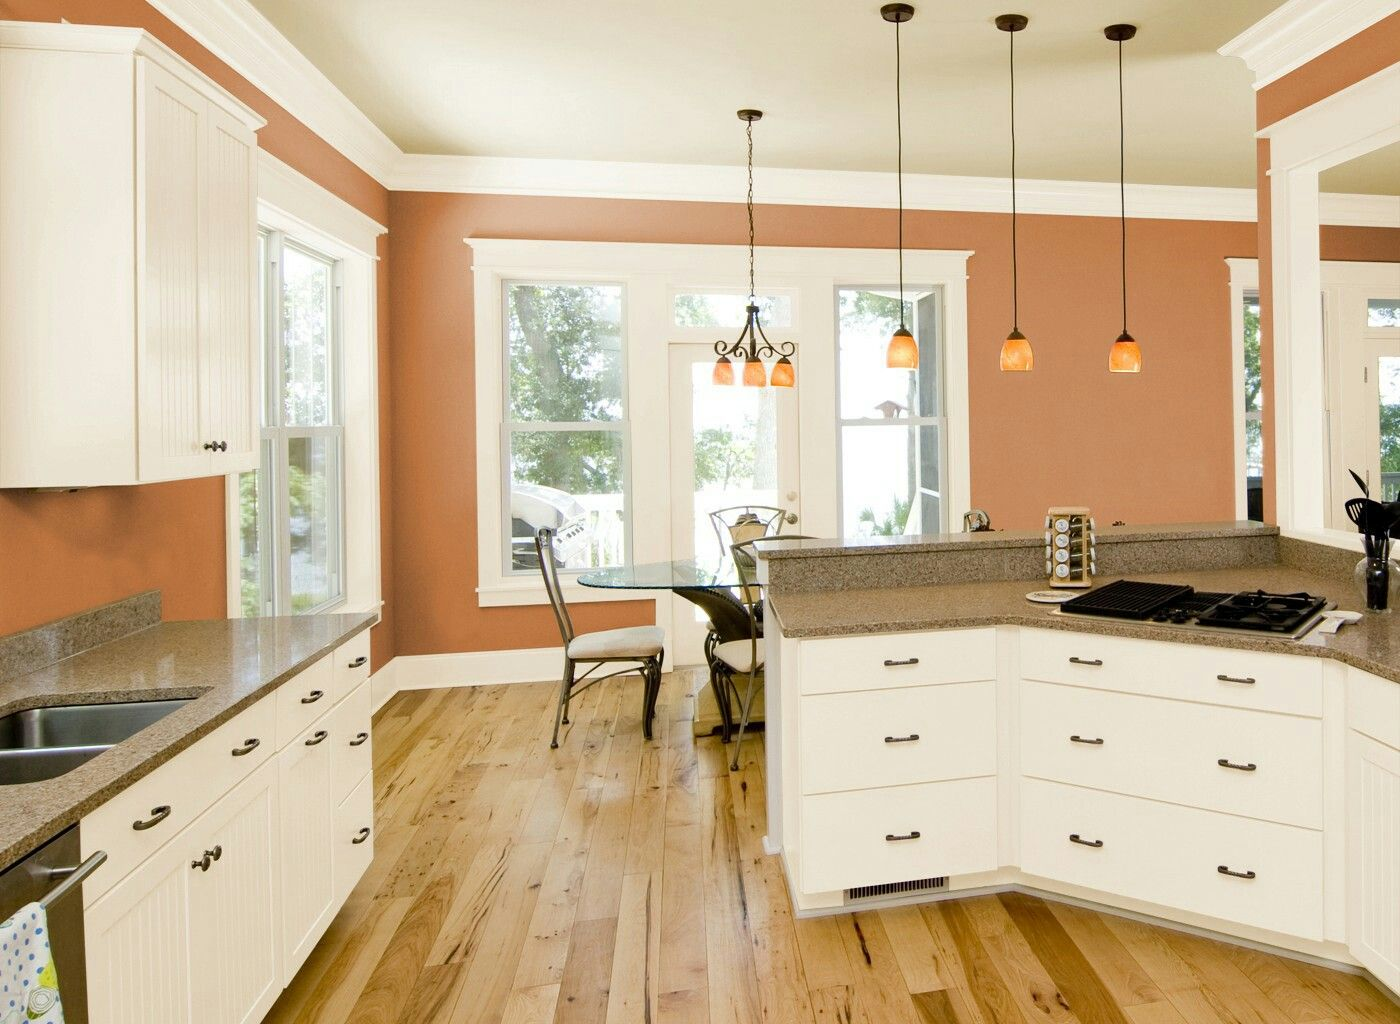 Pin By Pam Rockwell On My Home Design Kitchen Colors